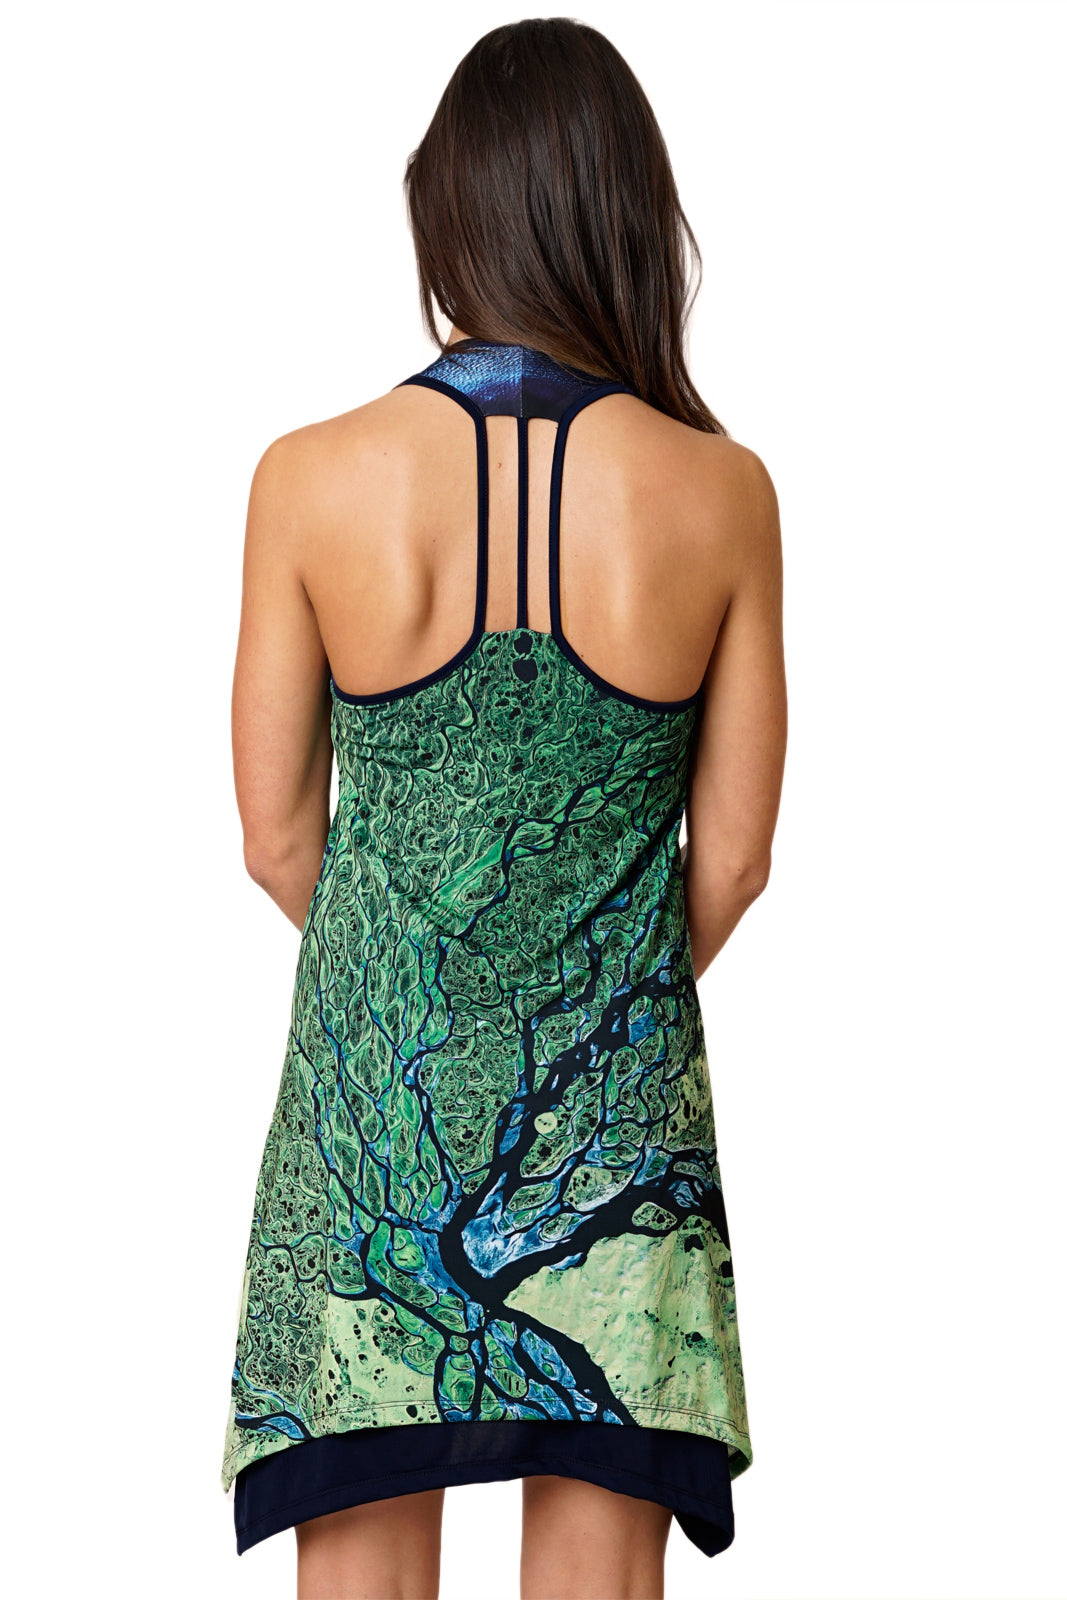 Gypsy Dress-National Geographic Clothing-Map Dress-Lena Delta-Back view